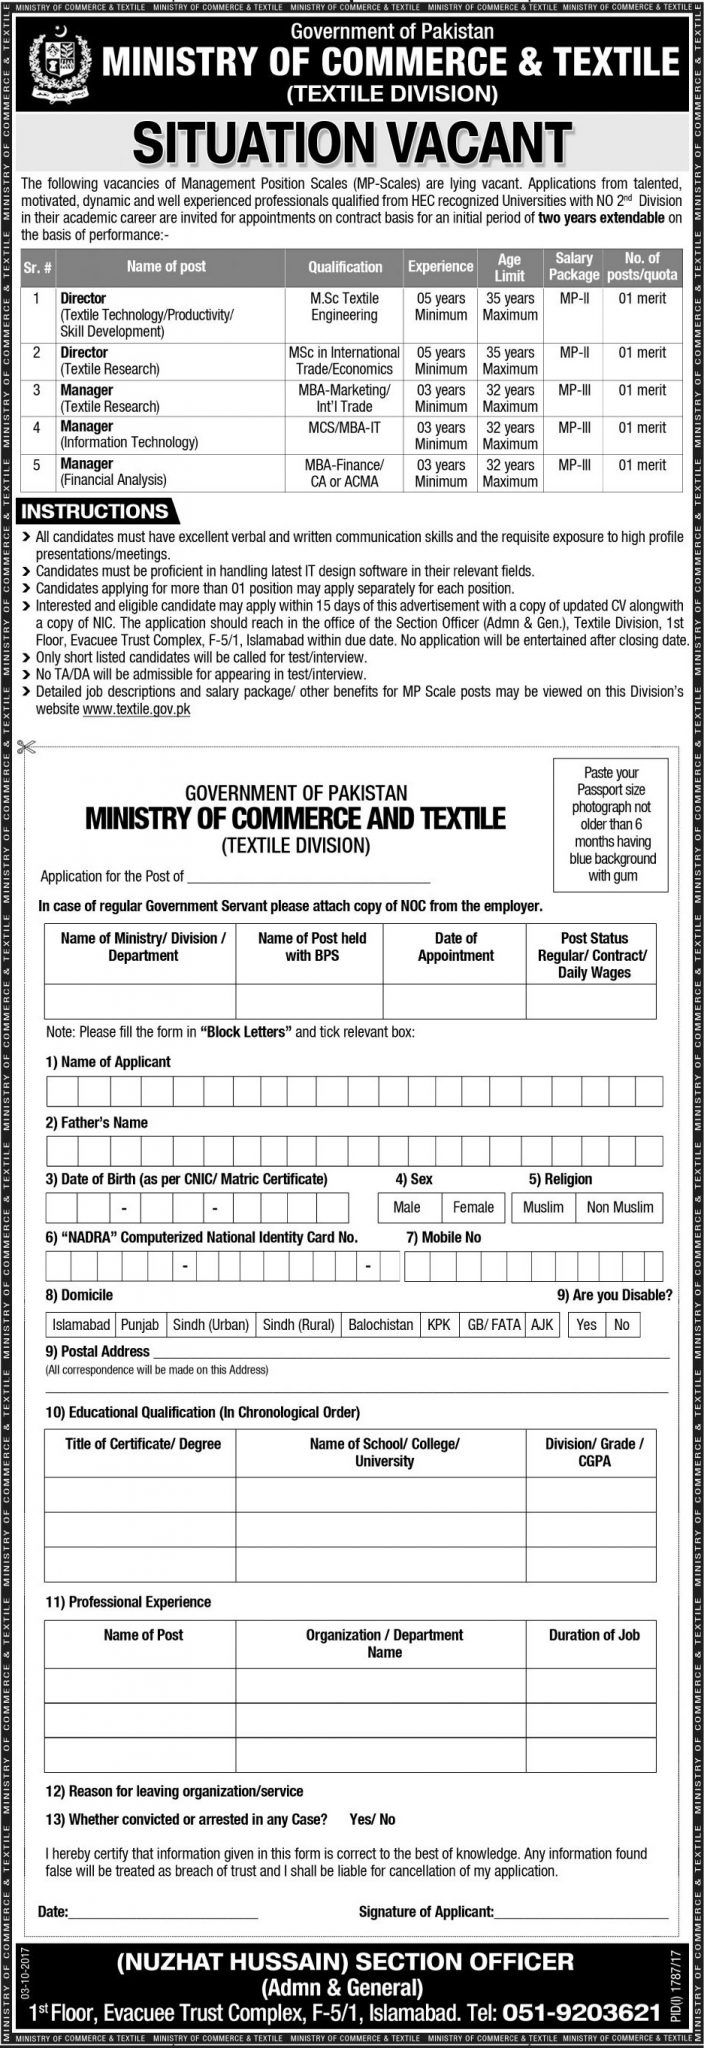 Ministry Of Commerce And Textile Jobs 2017 In Islamabad For Director And Manager Financial Analyst http://www.jobsfanda.com/ministry-of-commerce-and-textile-jobs-2017-in-islamabad-for-director-and-manager-financial-analyst/